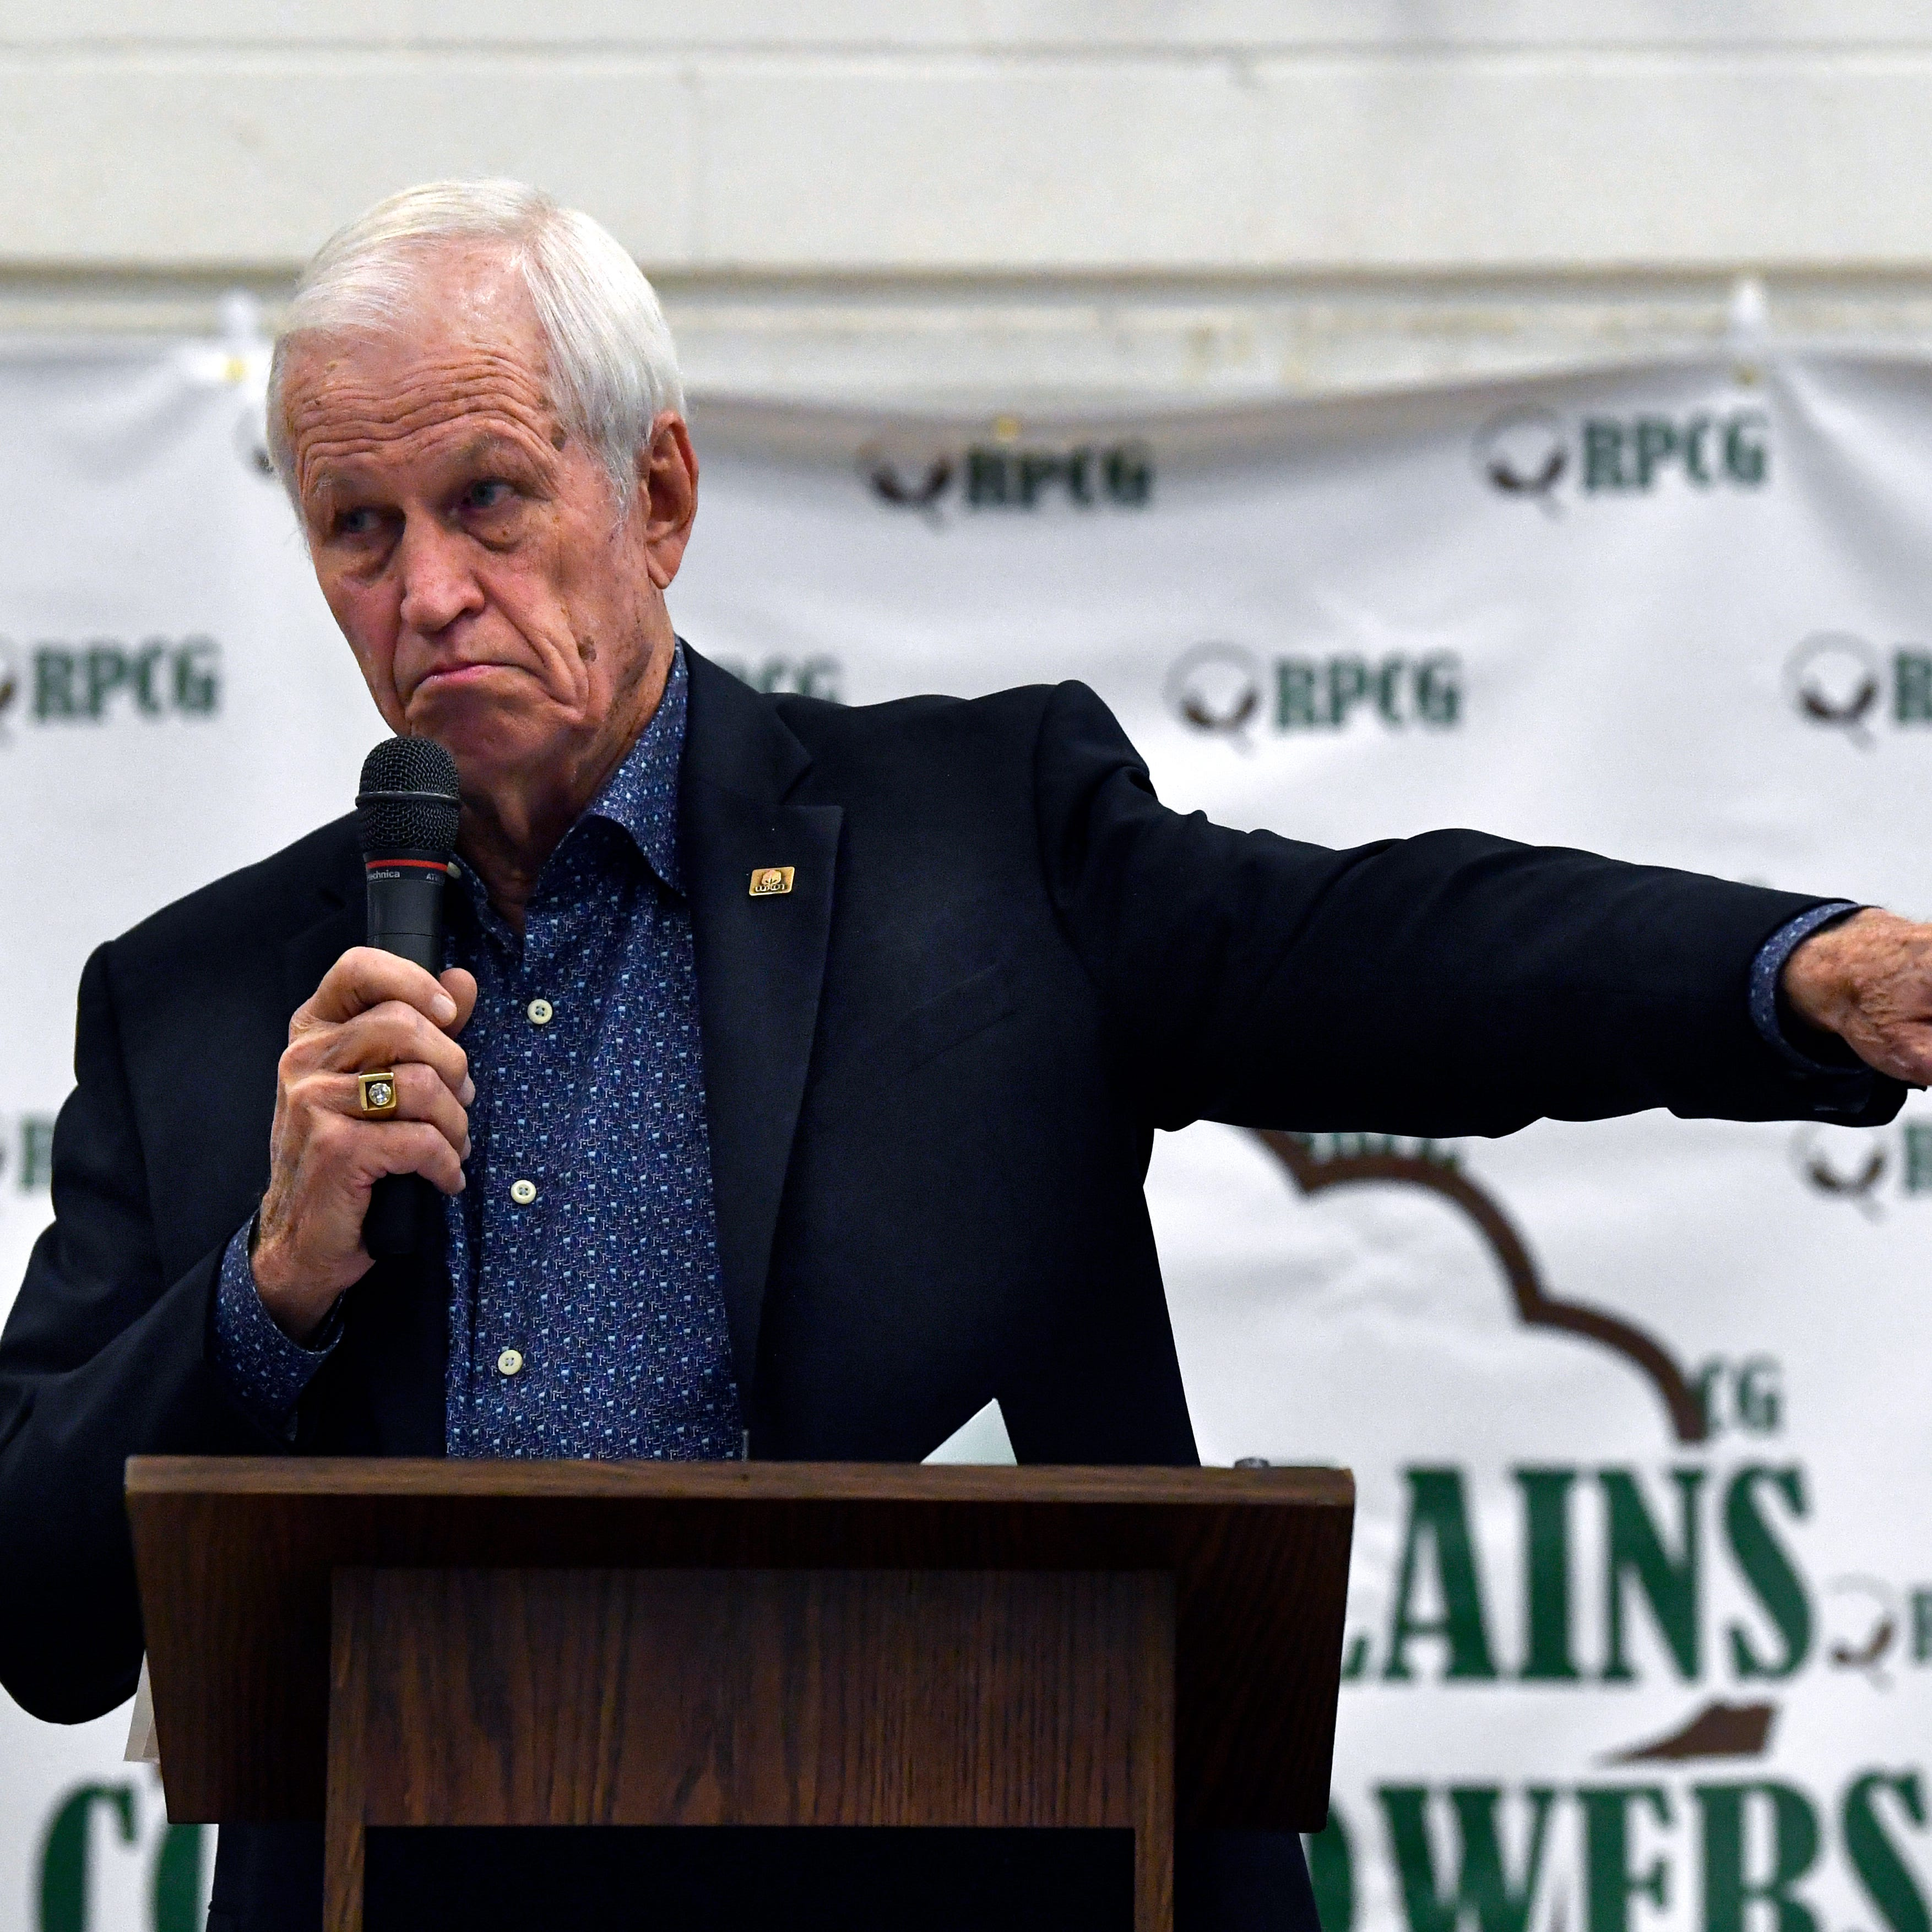 Fill-in speaker Stenholm gives farm show audience a former congressman's take on things